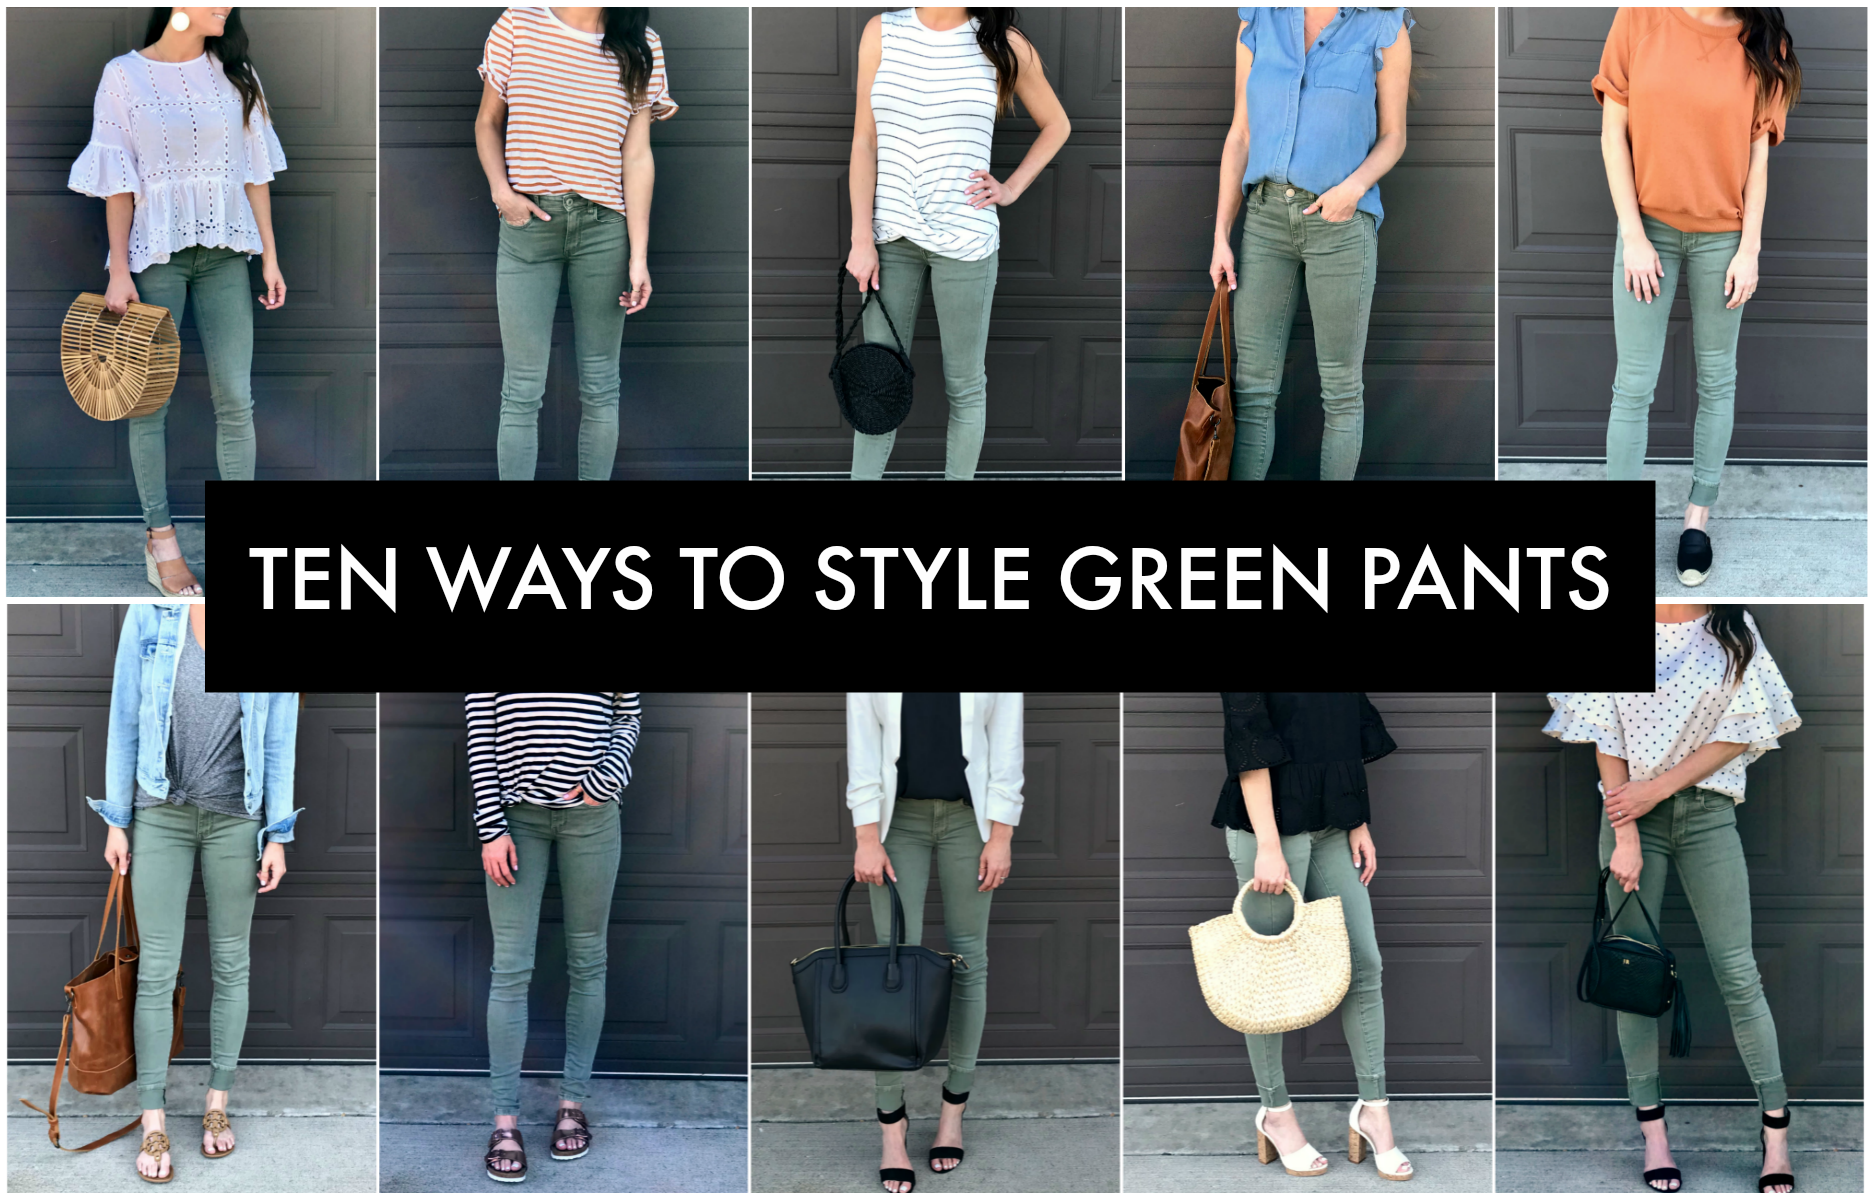 Ten Ways to Style Green Pants